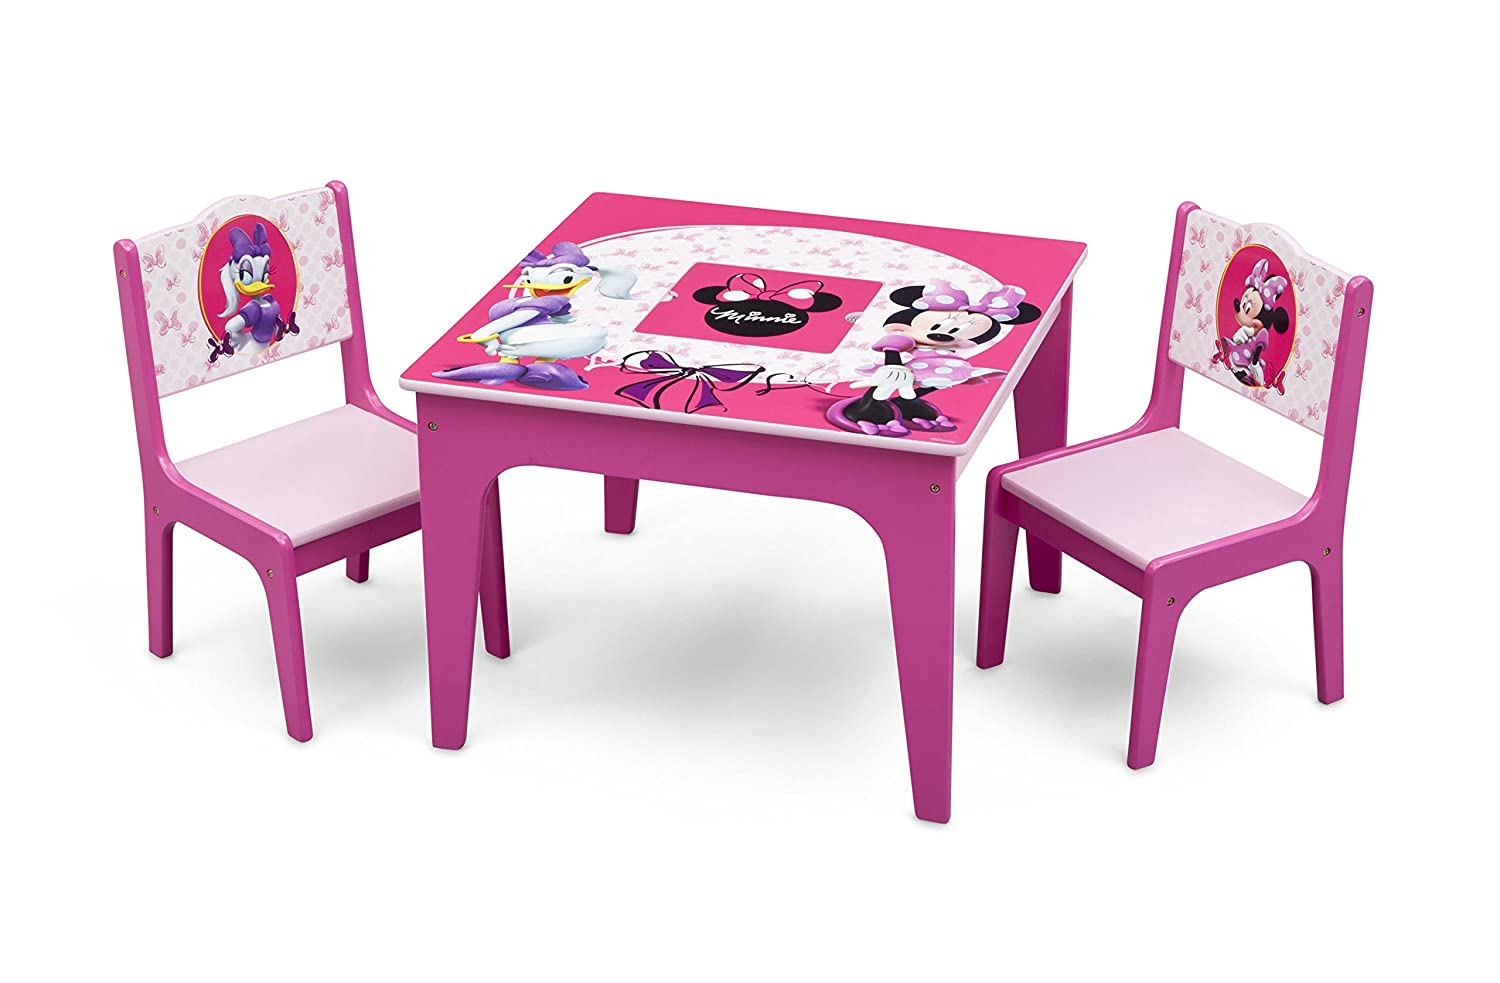 Delta Children Deluxe Kids Chair Set with Table (2 Chairs Included), Disney Minnie Mouse